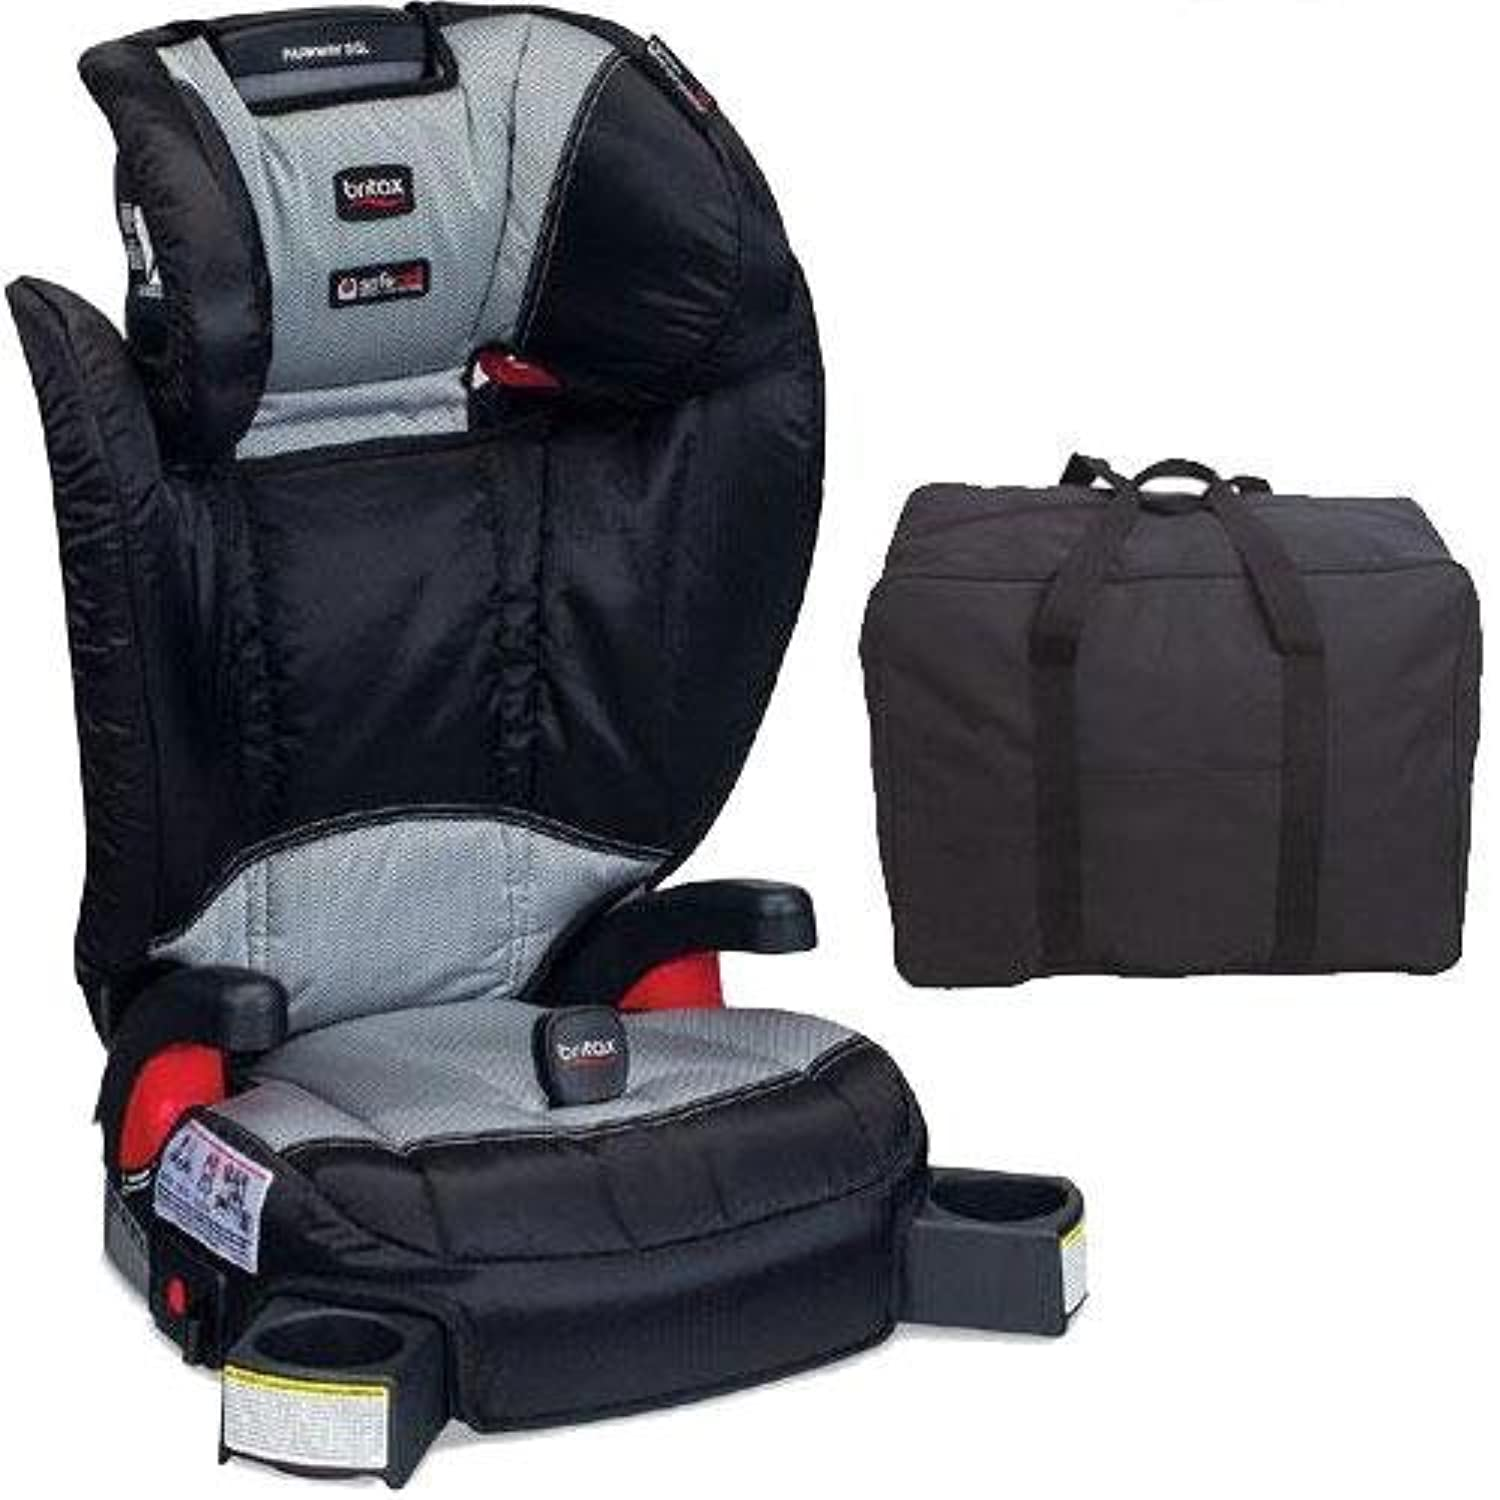 Britax - Parkway SGL G1 1 Belt-Positioning Booster Seat with Travel Bag - Phantom by Britax USA